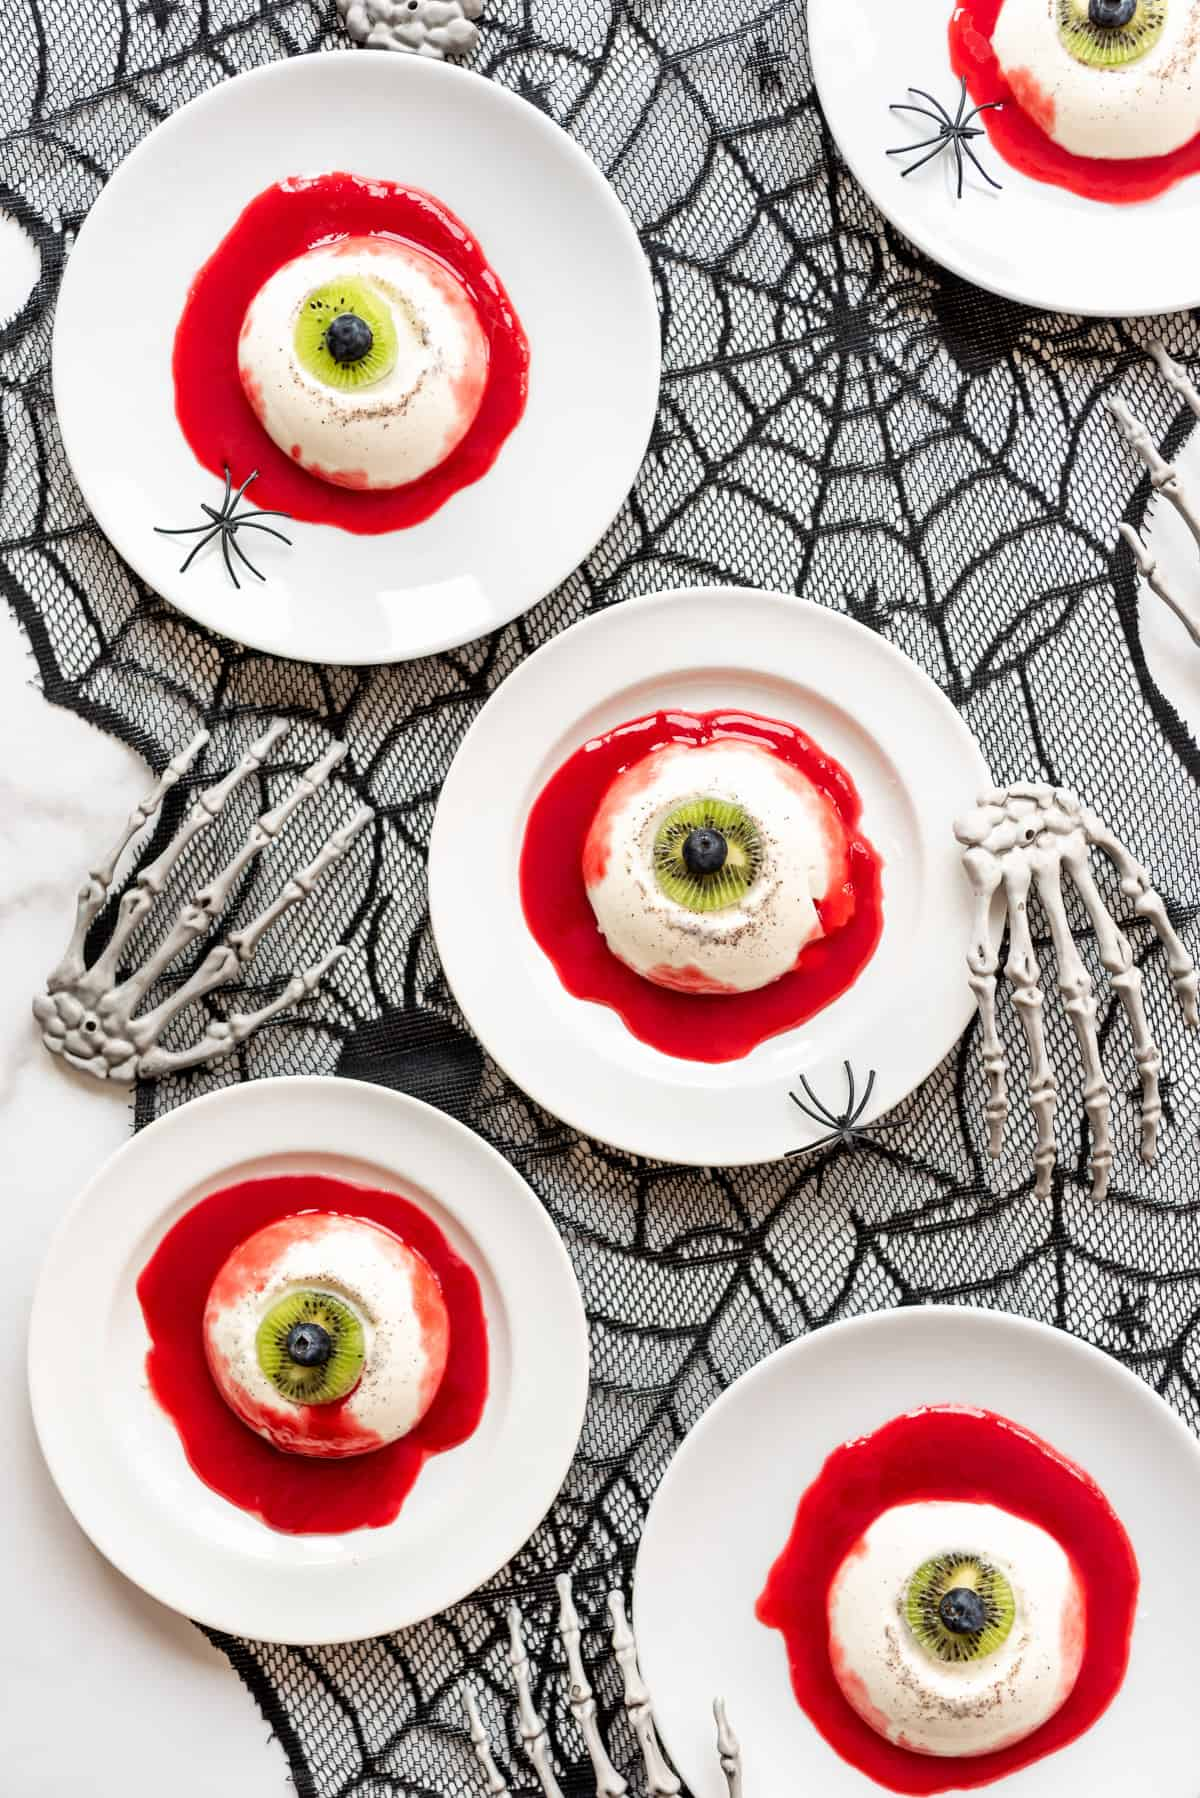 dessert plates on a spiderweb table runner with plastic skeleton hands and panna cotta eyeballs on them.